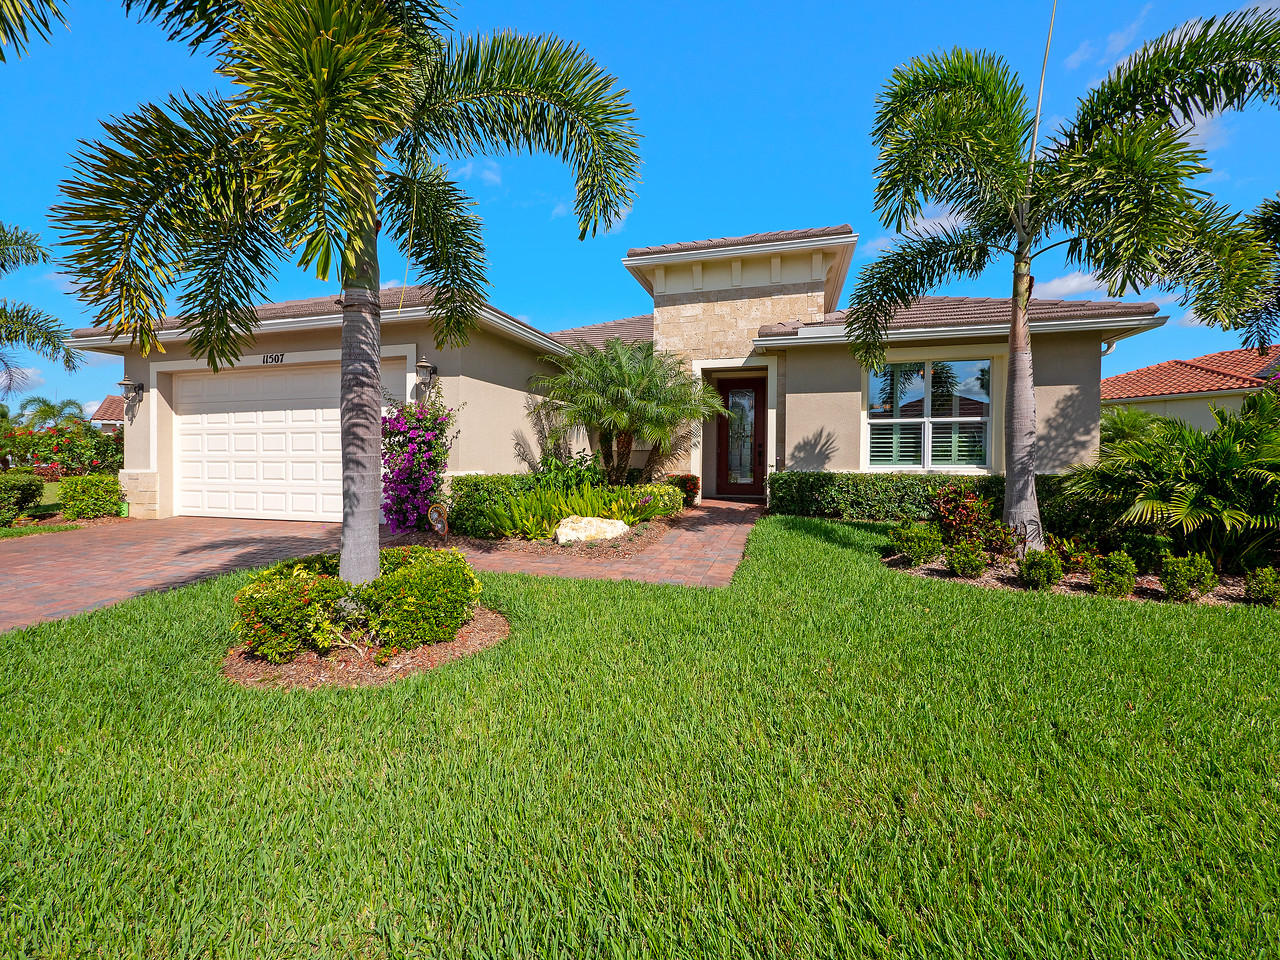 This sought-after ''Treasure Coast'' model, located in the upscale Estate Homes section of Tradition's Vitalia community, boasts an oversize lot, like-new condition having only been occupied since 2015. Features over $90k in upgrades including closet built-ins & kitchen cabinets,Crown Moulding,Phantom retracting patio door screens,granite counters,front impact glass,plantation shutters throughout,extended-length garage,serene lake view from extended/screened-in patio w/ceiling fans, extensive landscaping w/uplighting, spacious laundry room w/deep sink & cabinetry,new bedroom flooring,efficient gas water heater, alarm. All appliances are virtually brand new. Enjoy the good life at the extensive Clubhouse & Pool! Looking for a Quick Close? This home is picture perfect & move-in ready!